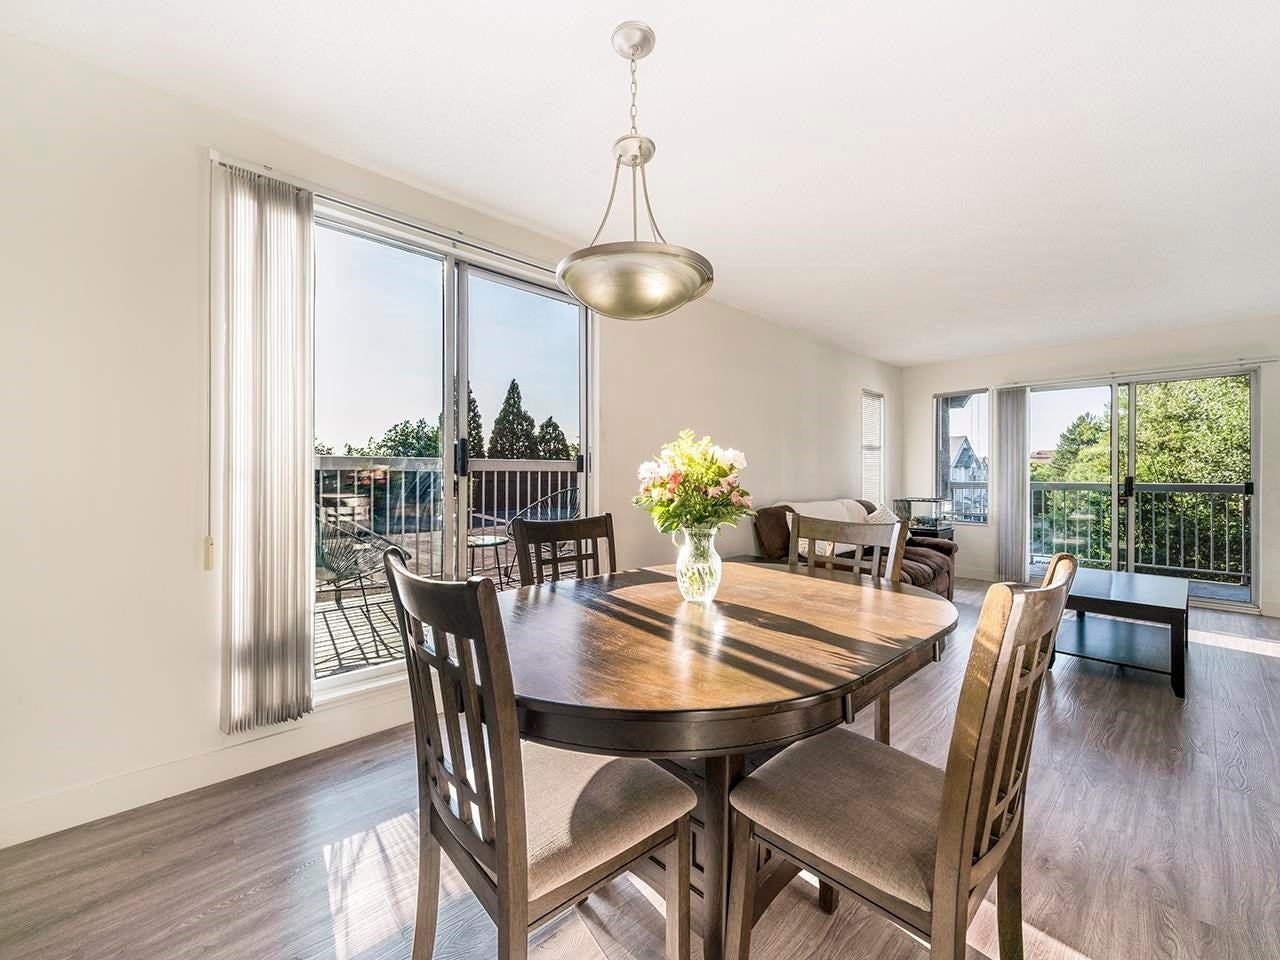 306 5700 200 STREET - Langley City Apartment/Condo for sale, 2 Bedrooms (R2605385) - #1